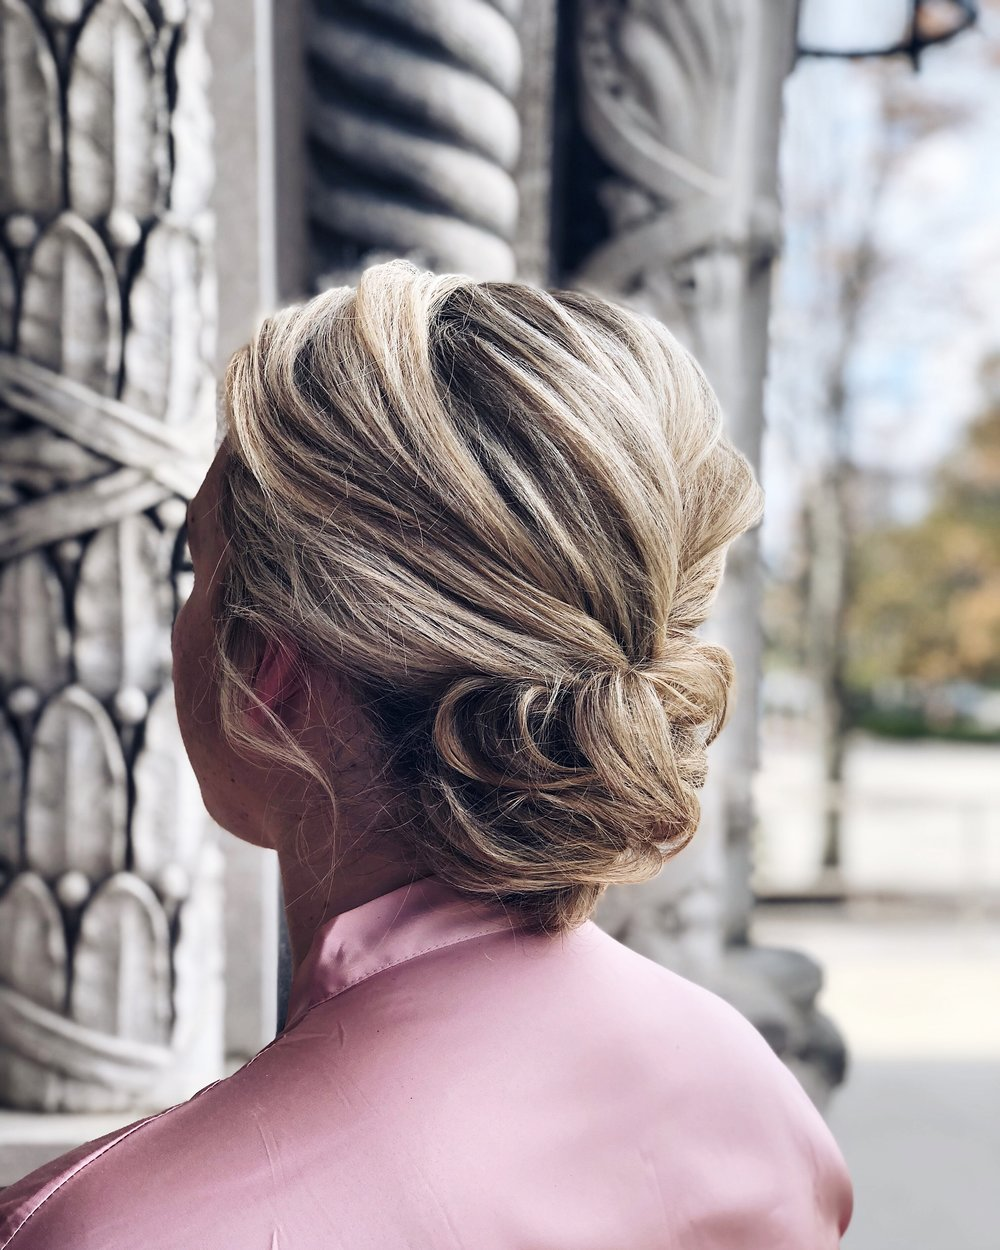 Off Site Services - Bridal Style: $90+Event Style: $90+Blow Out: $53+Dry style: $45+Makeup Application: $70+Airbrush Makeup Application: $95+Strip Lashes: $15+*Dry styles include, only: curling, braids, straightening, top knot, and ponytails.